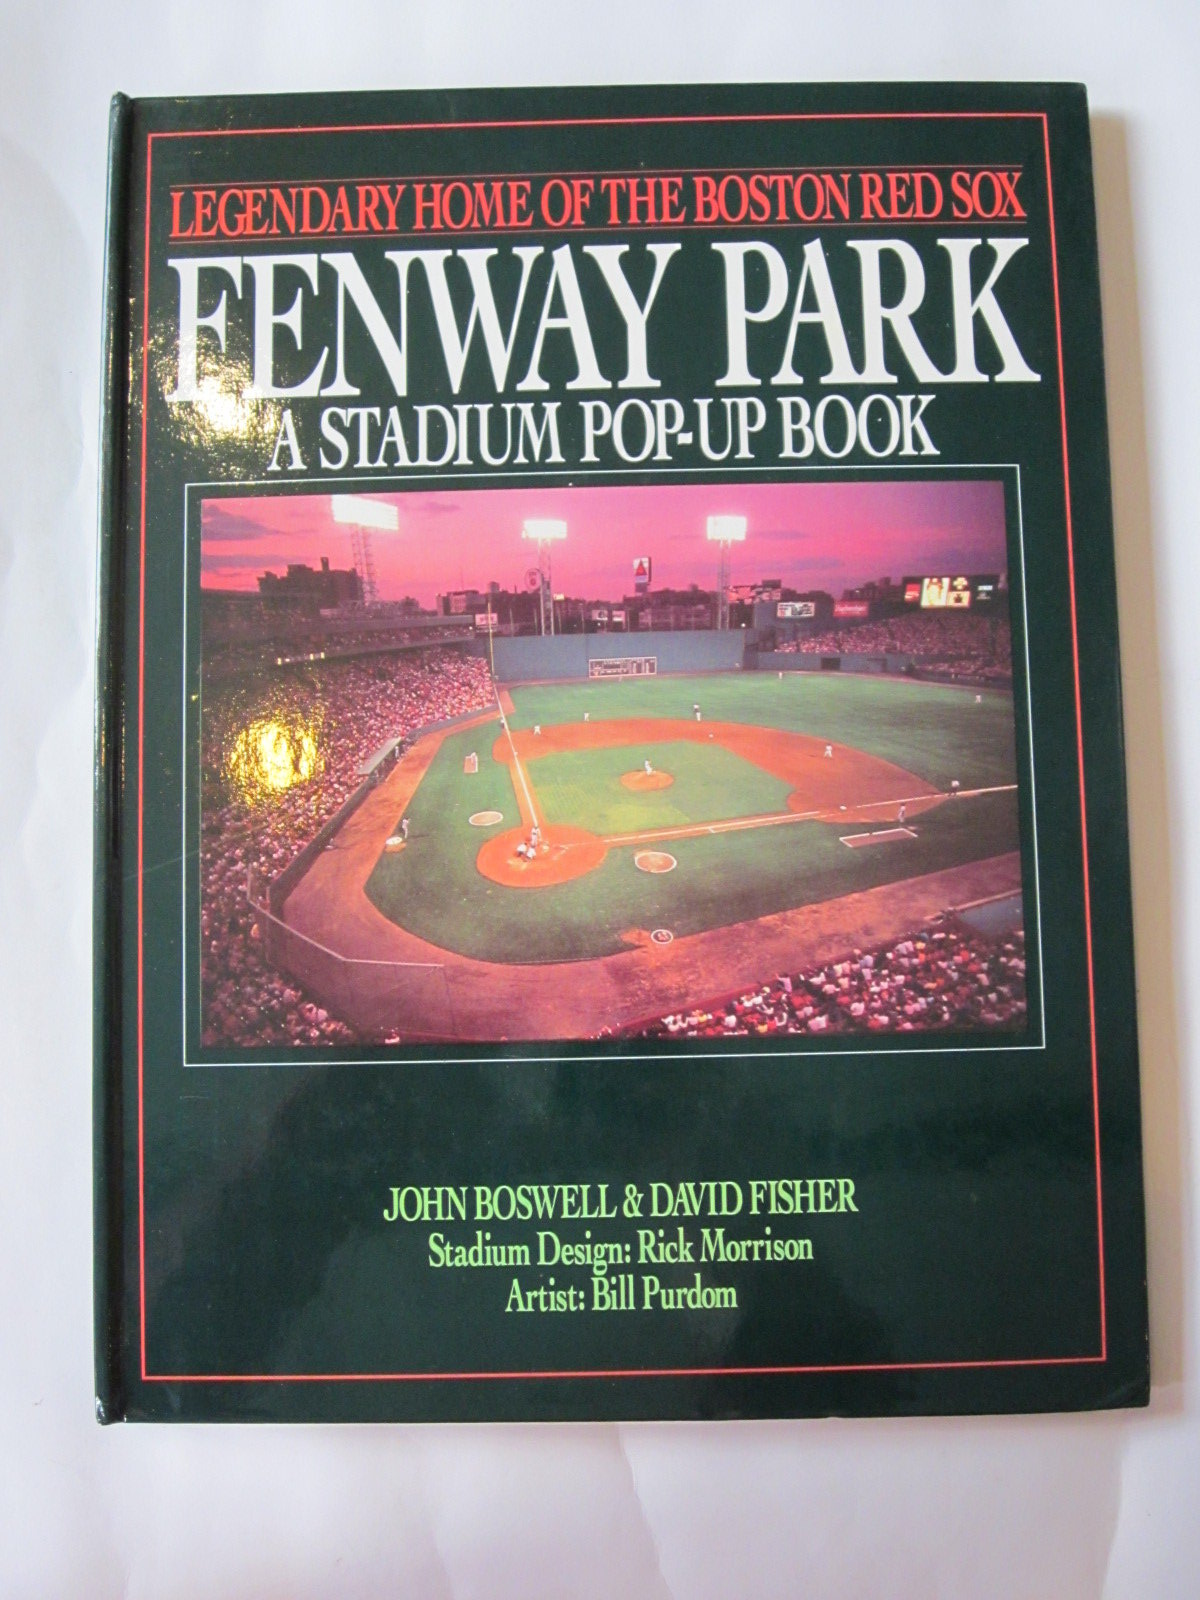 Photo of FENWAY PARK - A STADIUM POP-UP BOOK written by Boswell, John<br />Fisher, David illustrated by Purdom, Bill published by Little, Brown and Company (STOCK CODE: 1308053)  for sale by Stella & Rose's Books